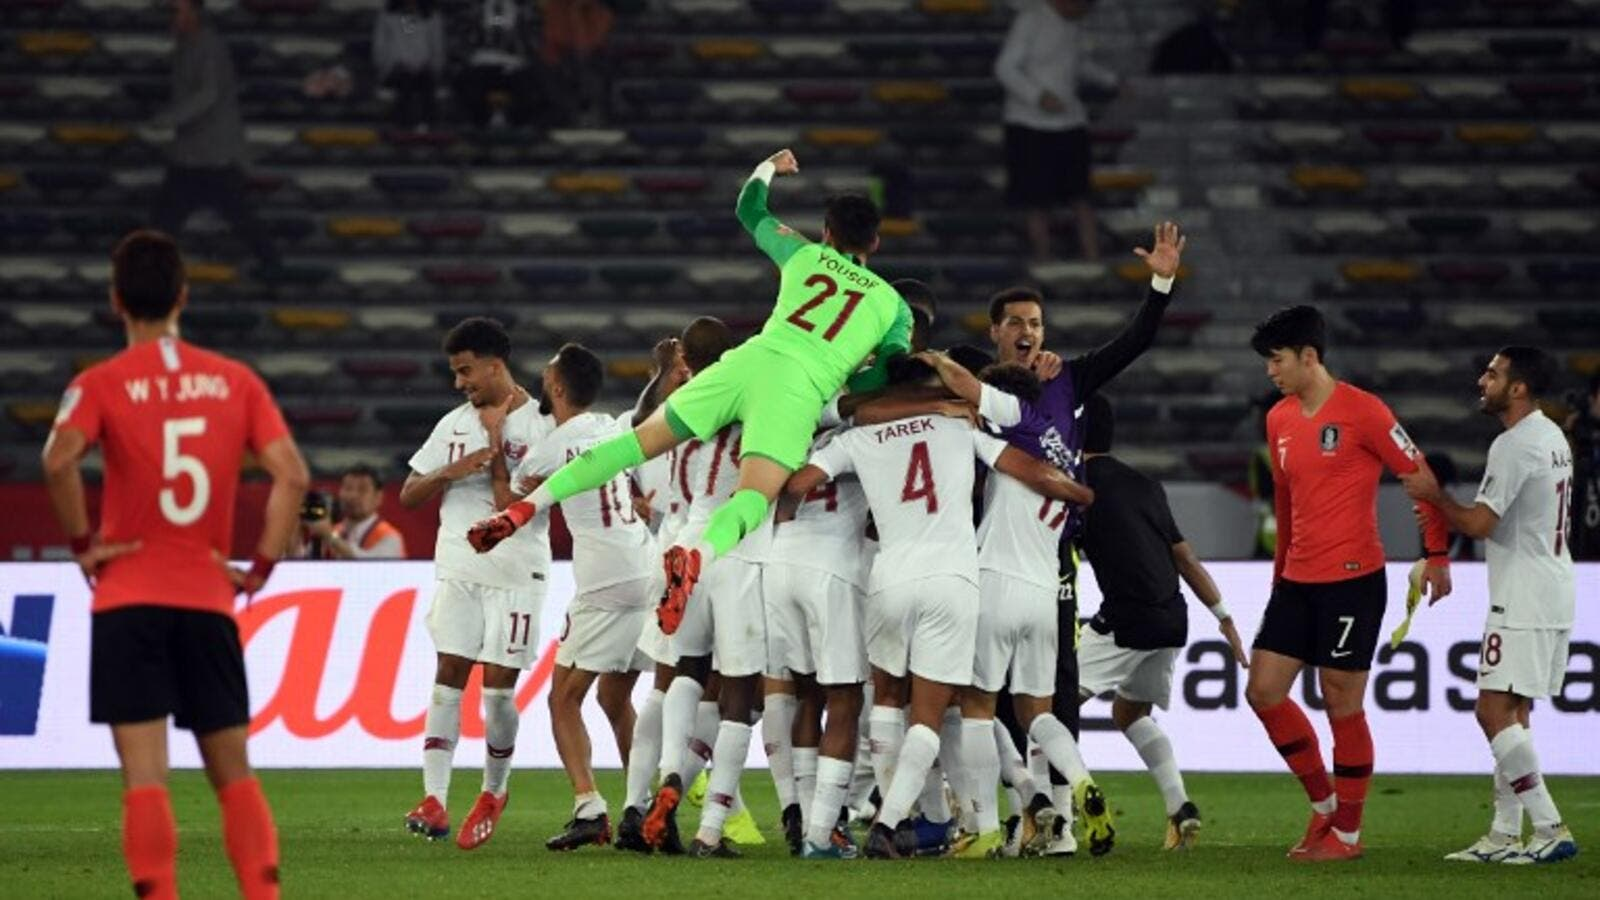 Qatar's players celebrate their victory during the 2019 AFC Asian Cup quarter-final football match between South Korea and Qatar at Zayed Sports City in Abu Dhabi on January 25, 2019.